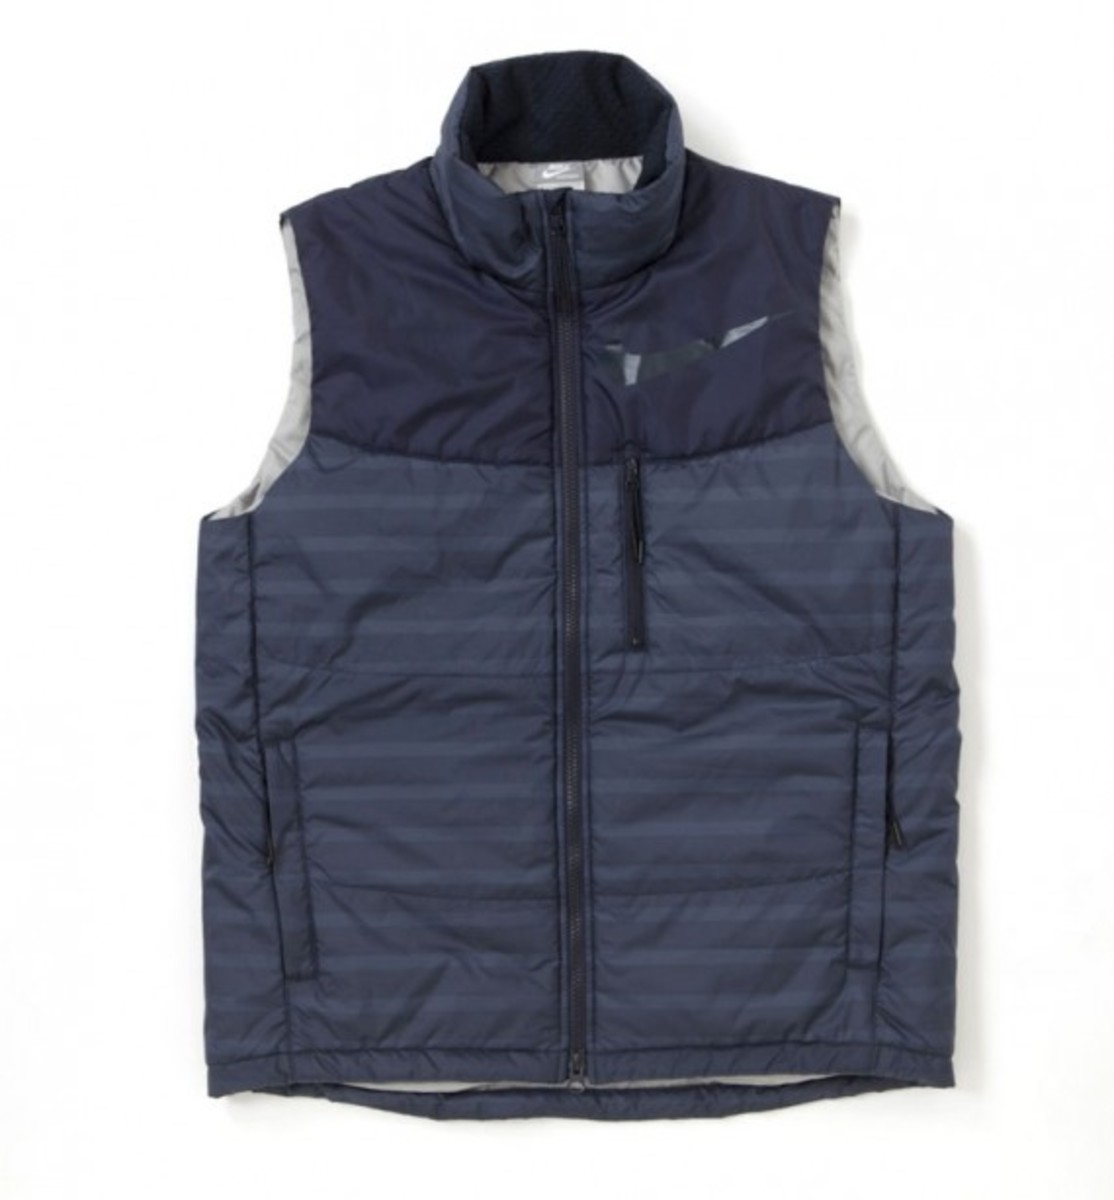 nike-sportswear-grey-navy-collection-04